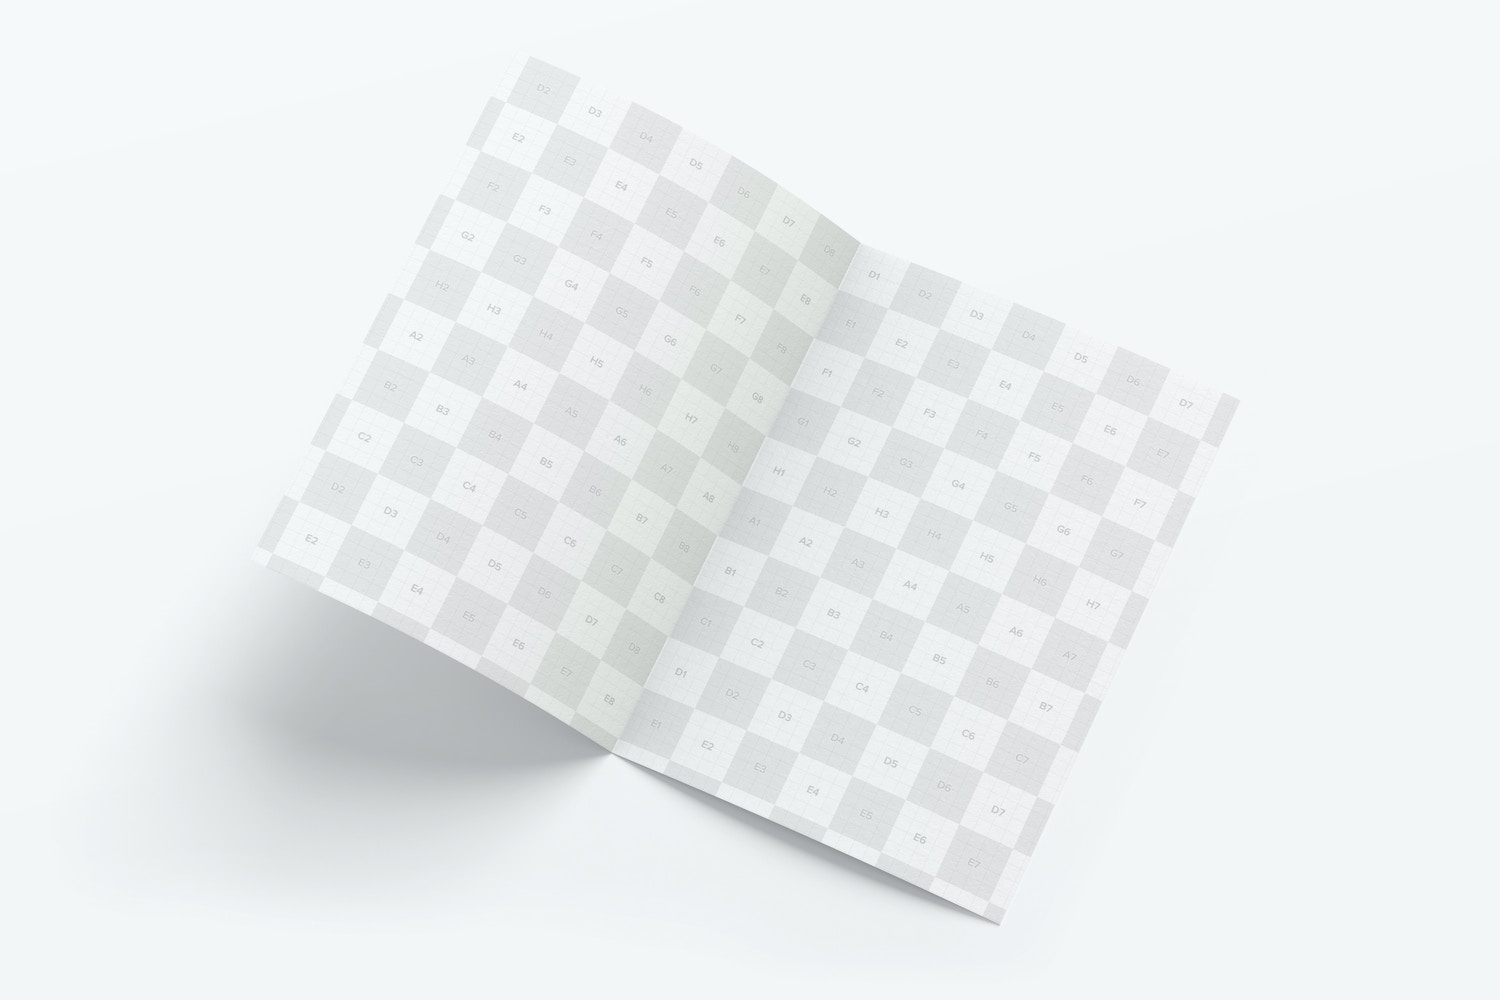 A7 Greeting Card Mockup, Spread Interior Pages